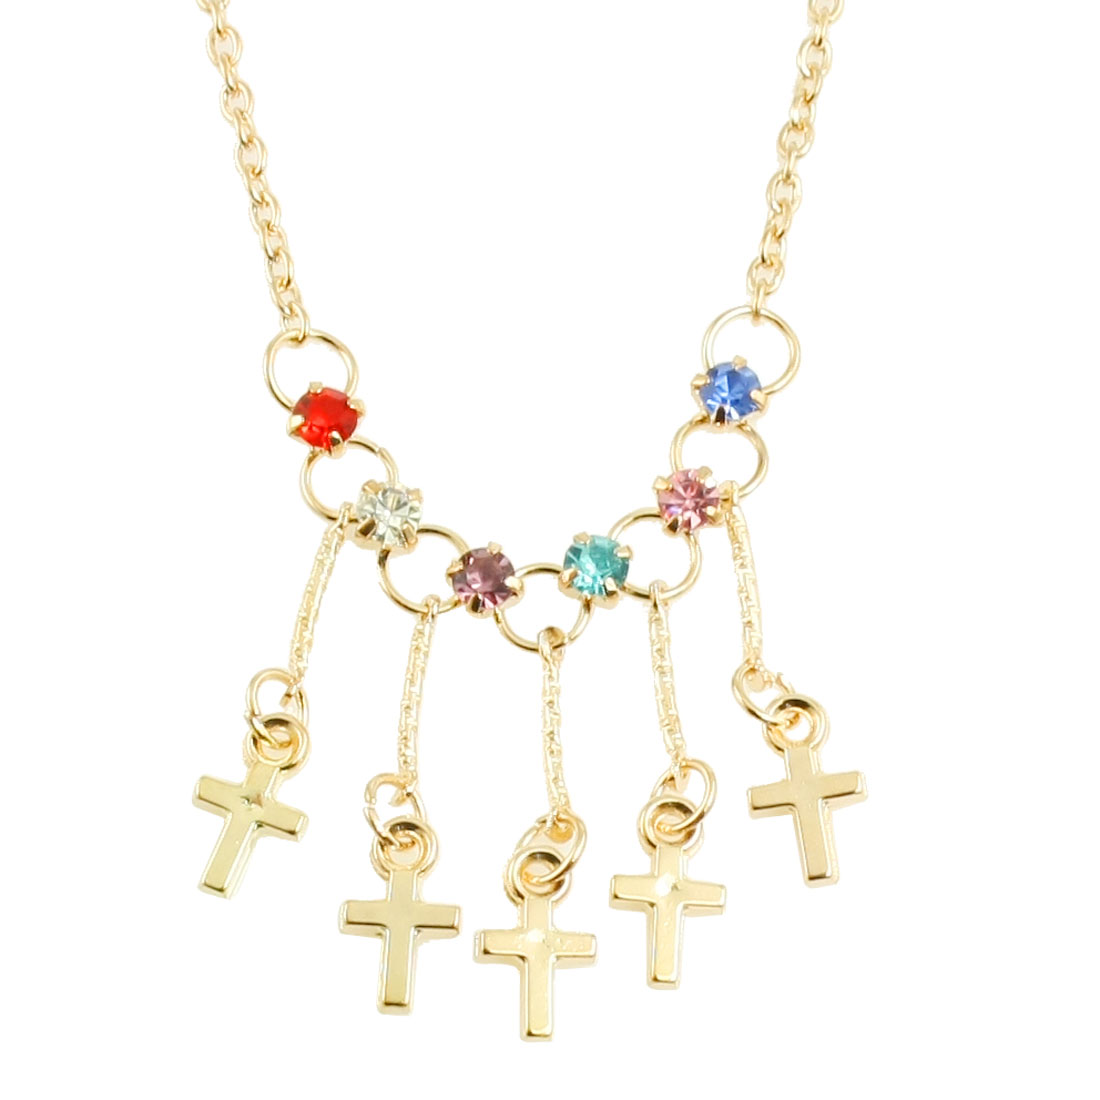 Ladies Gold Tone Metal Cross Purple Red Blue Rhinestone Pendant Chain Necklace